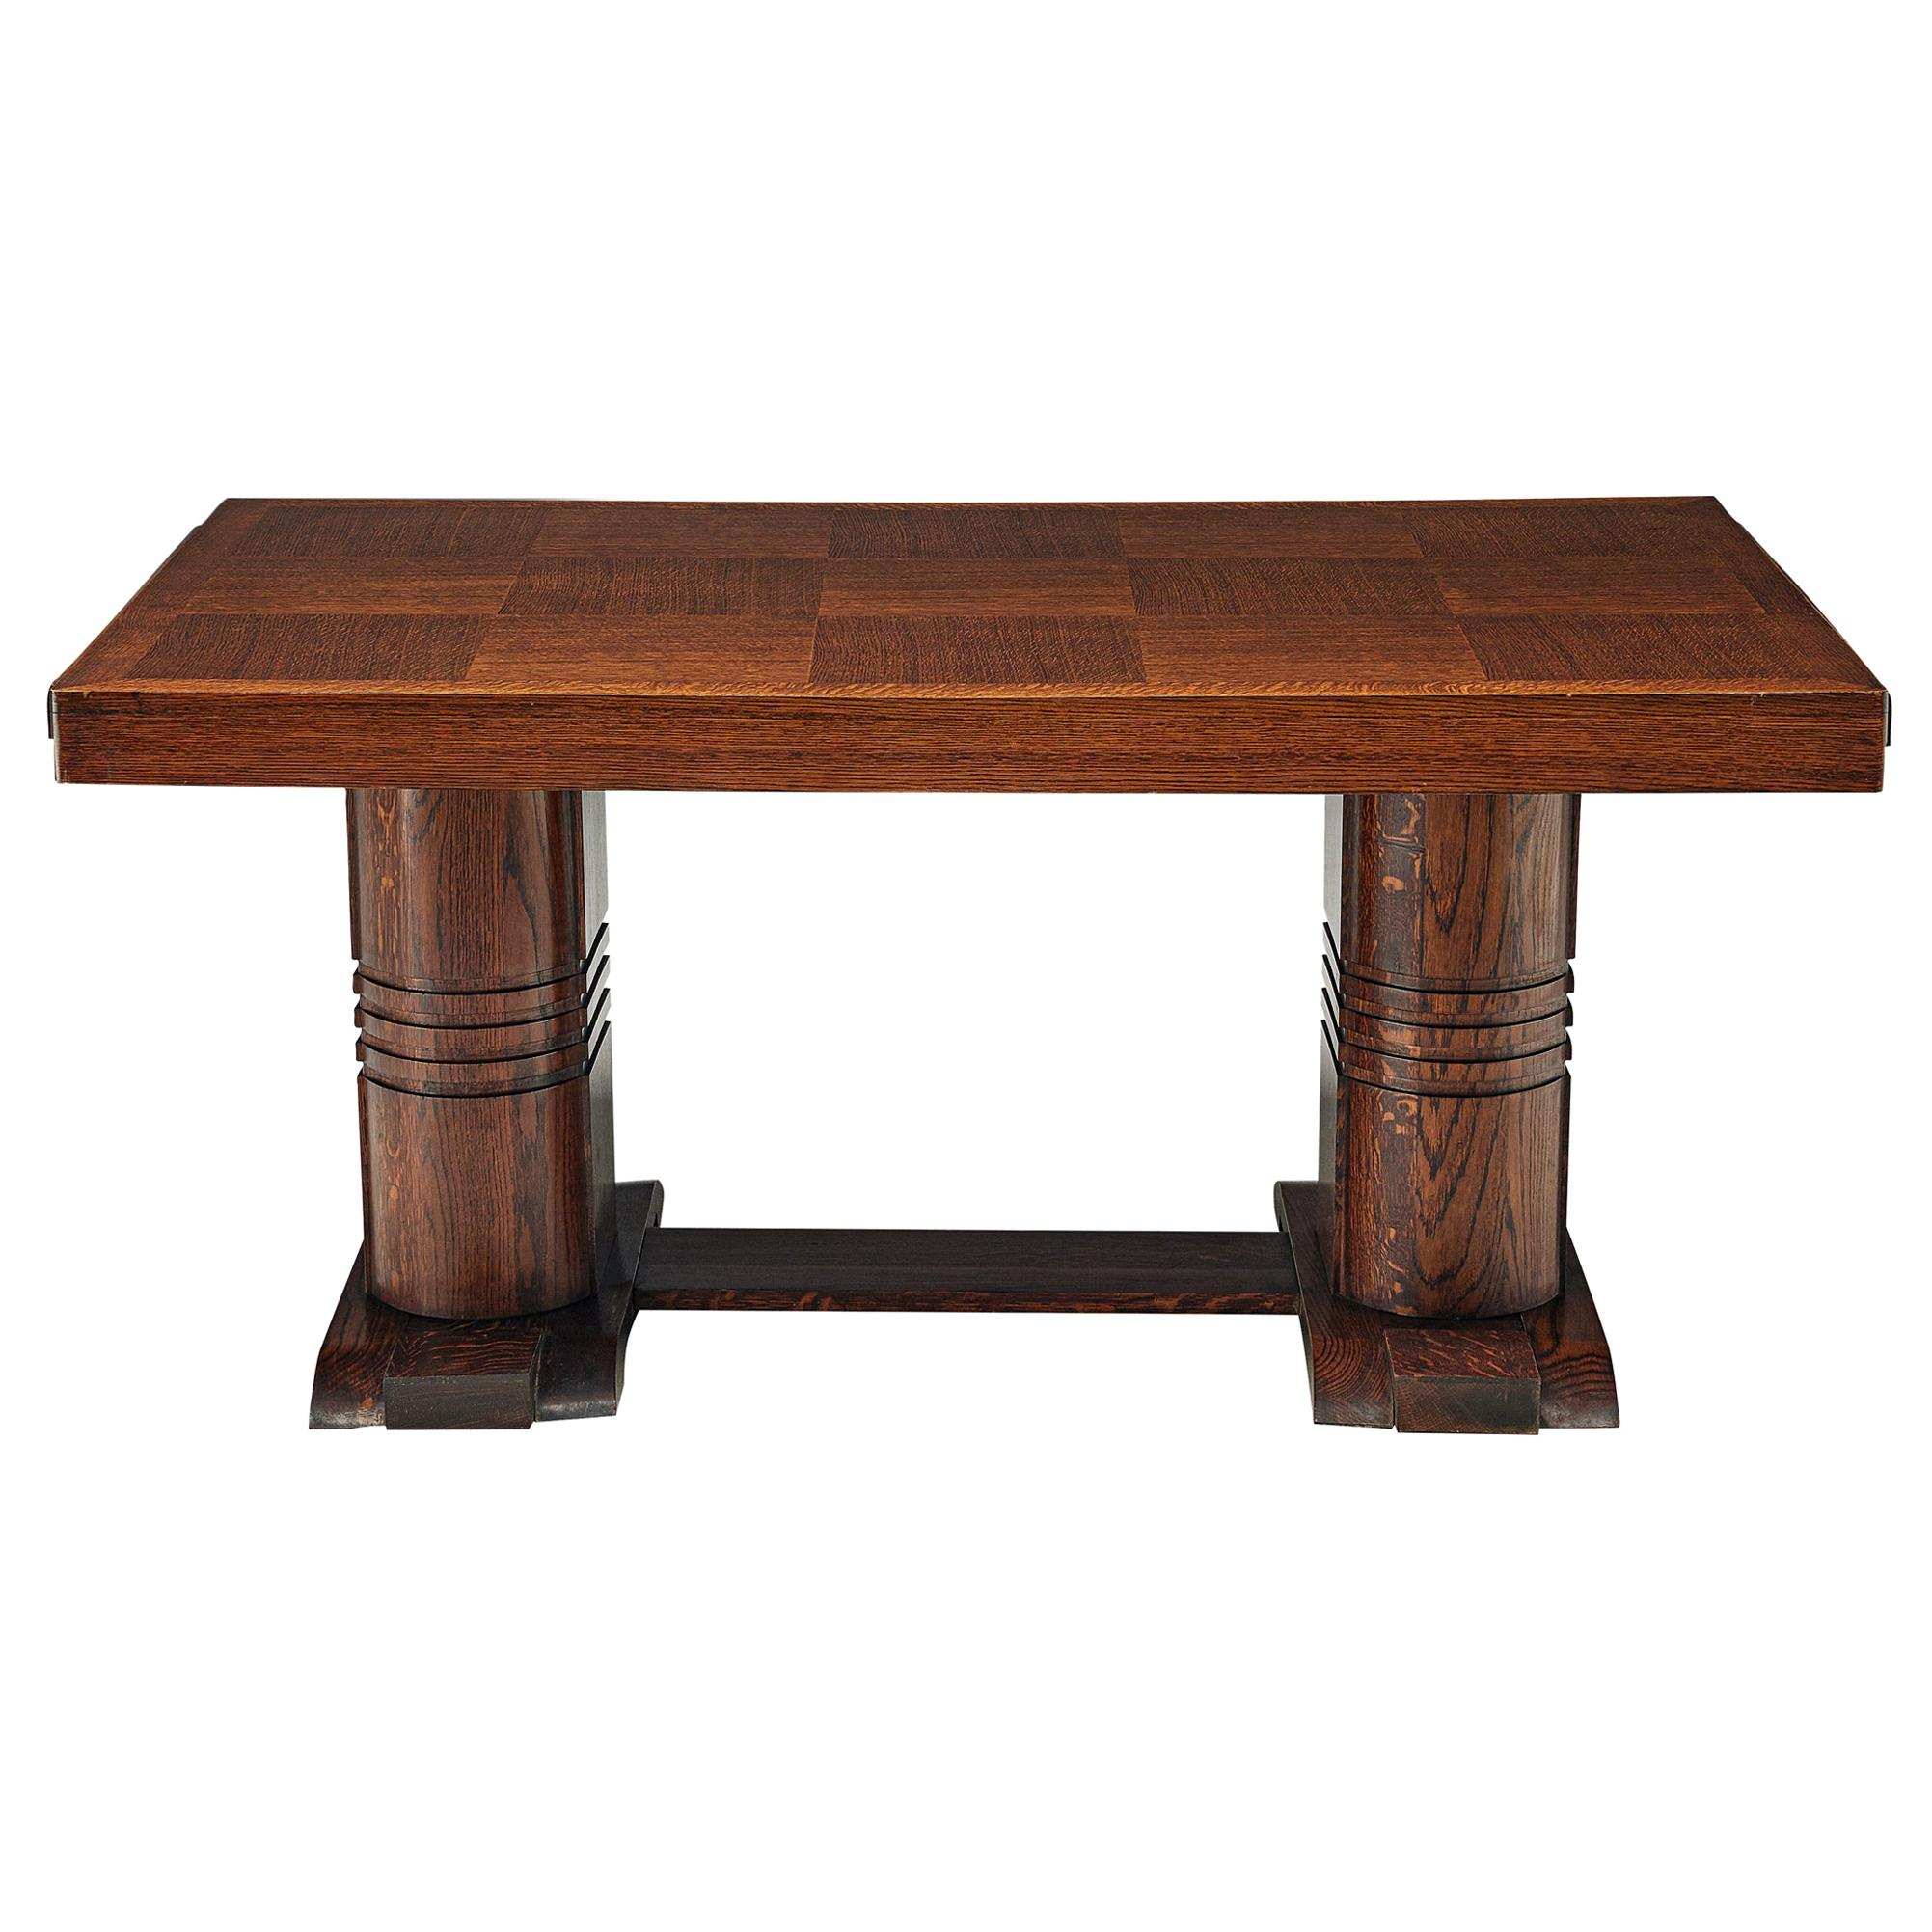 Art Deco Dining Table with Inlayed Top